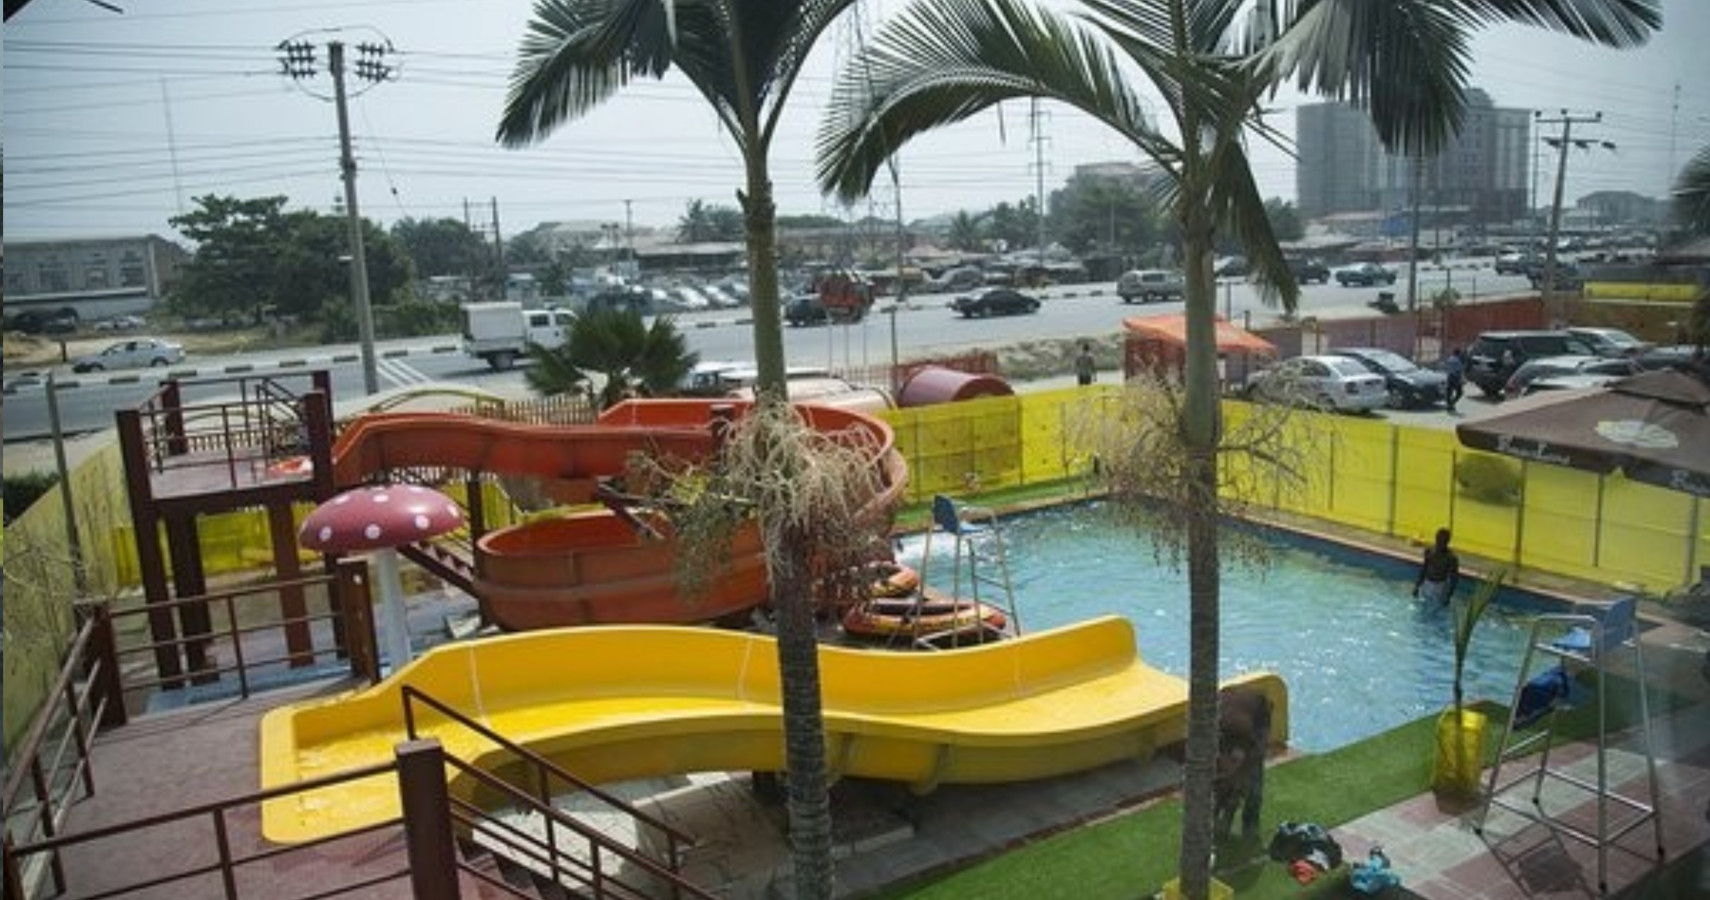 Lagos water park: Funderland Mall